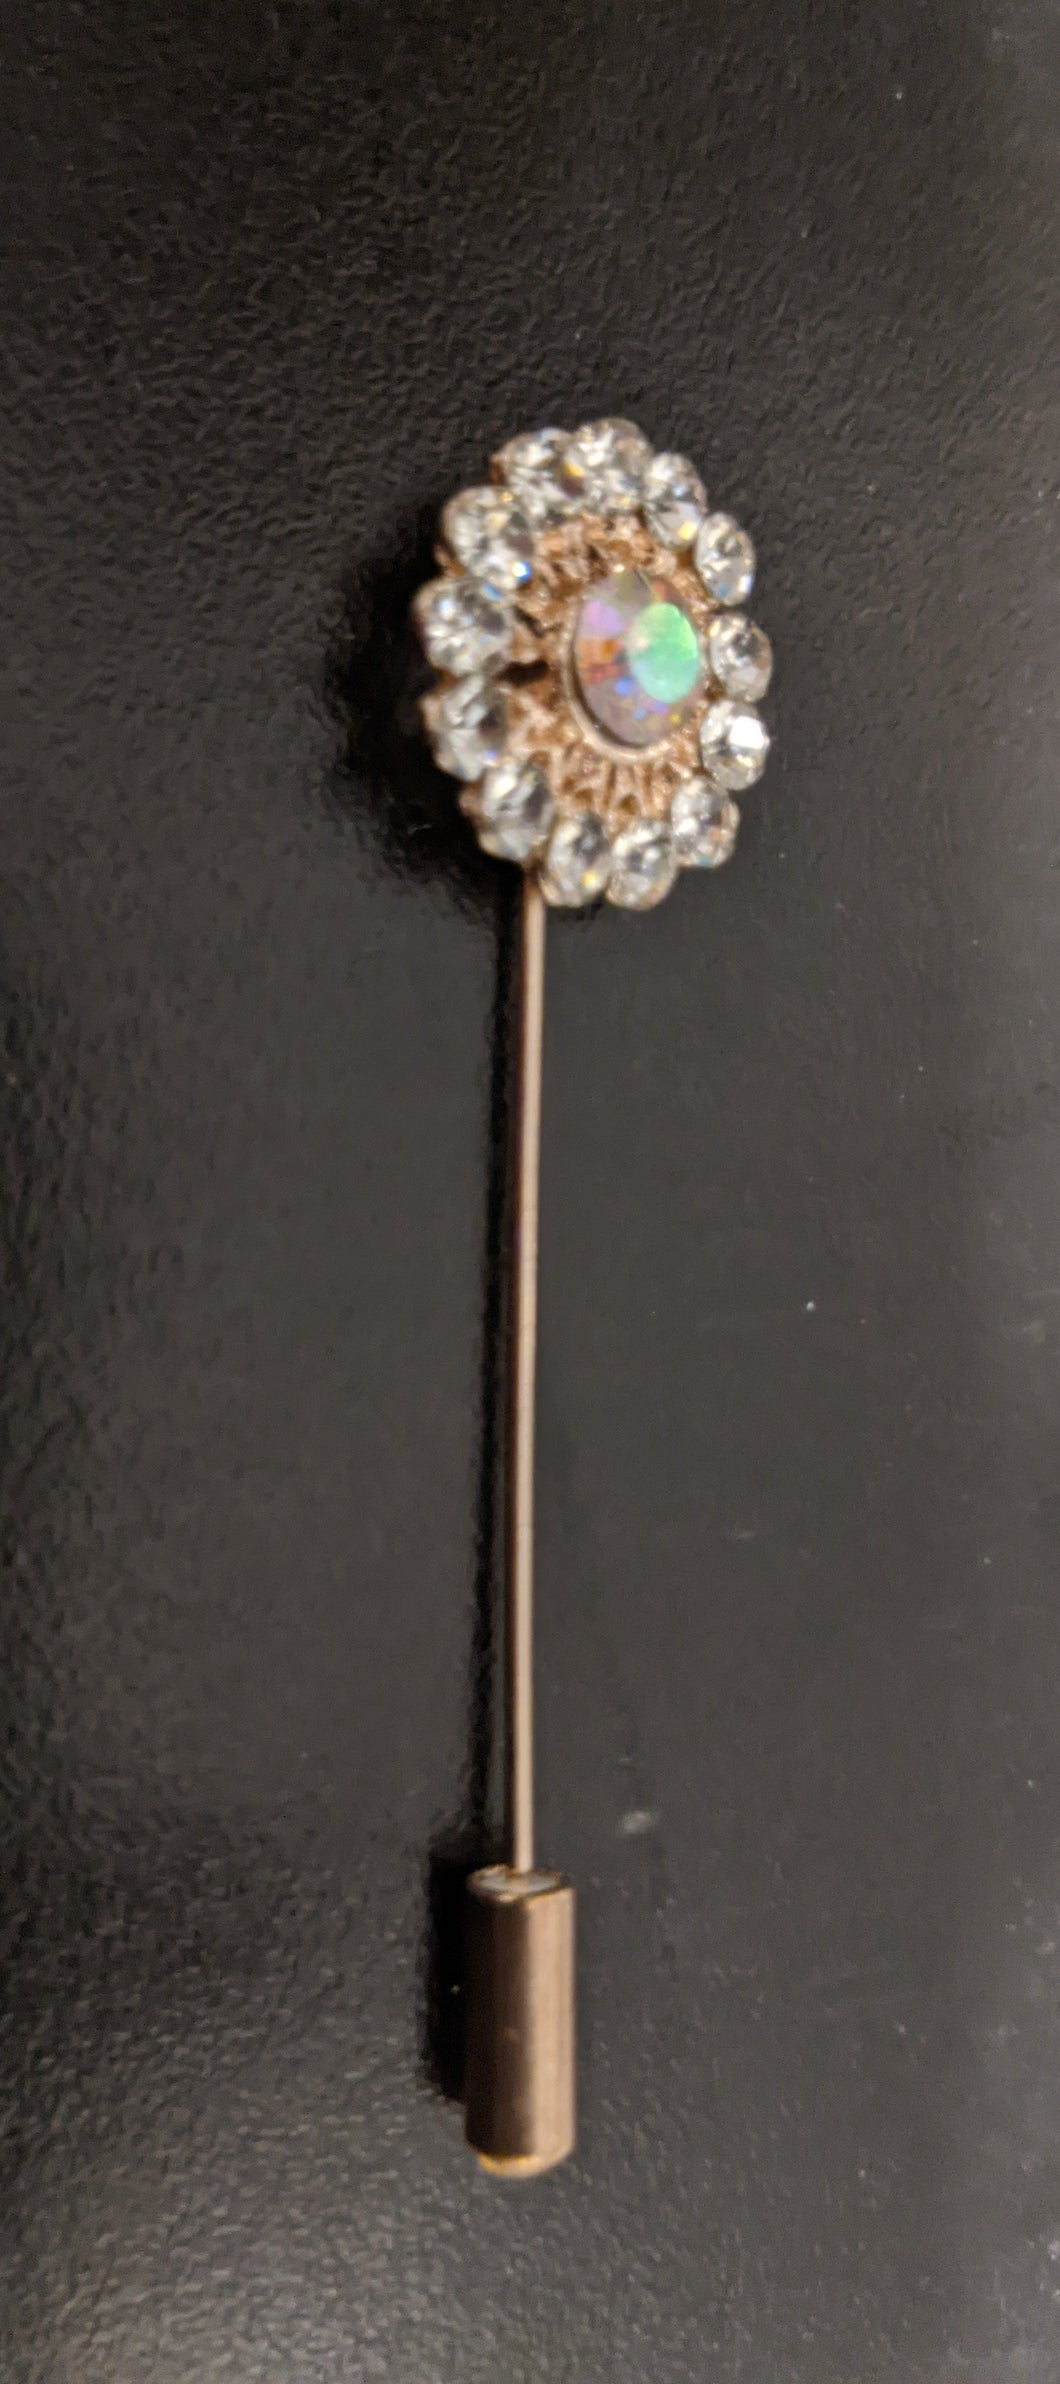 Pins with Flower Detail - Very Versatile!